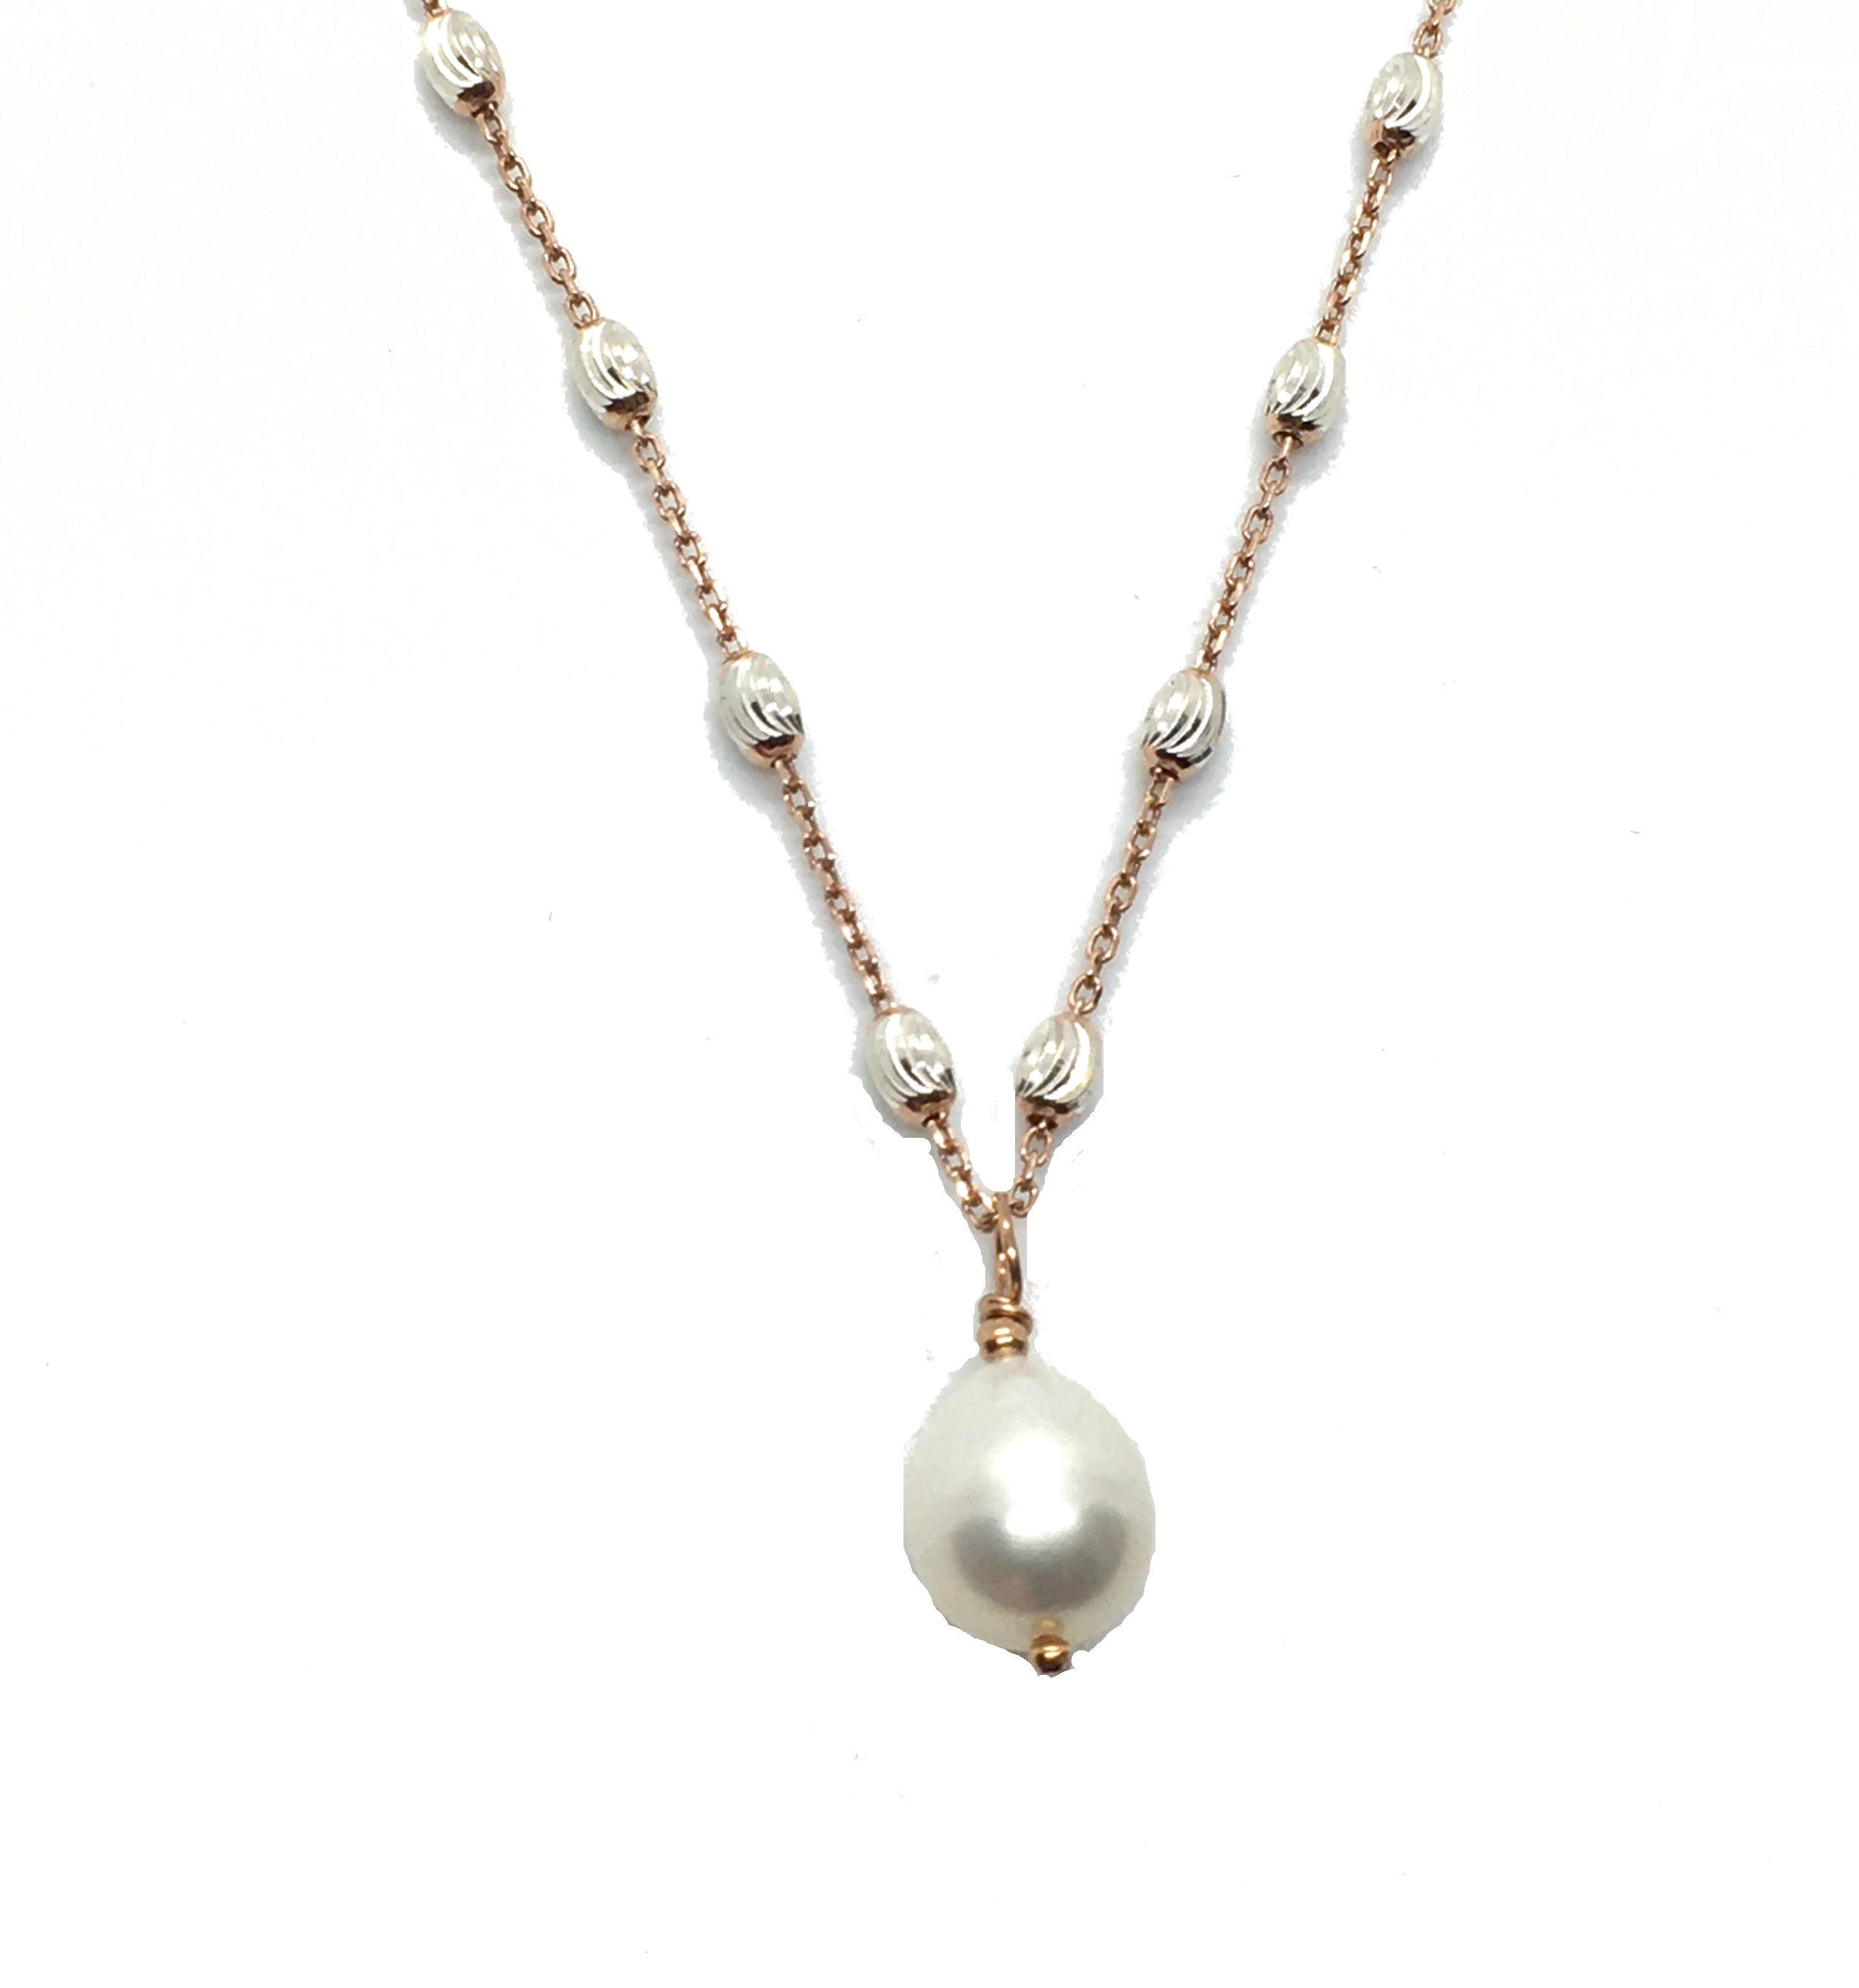 Single Pear Shape Freshwater White Pearl Pendant Necklace on Rose Gold Filled Silver Chain